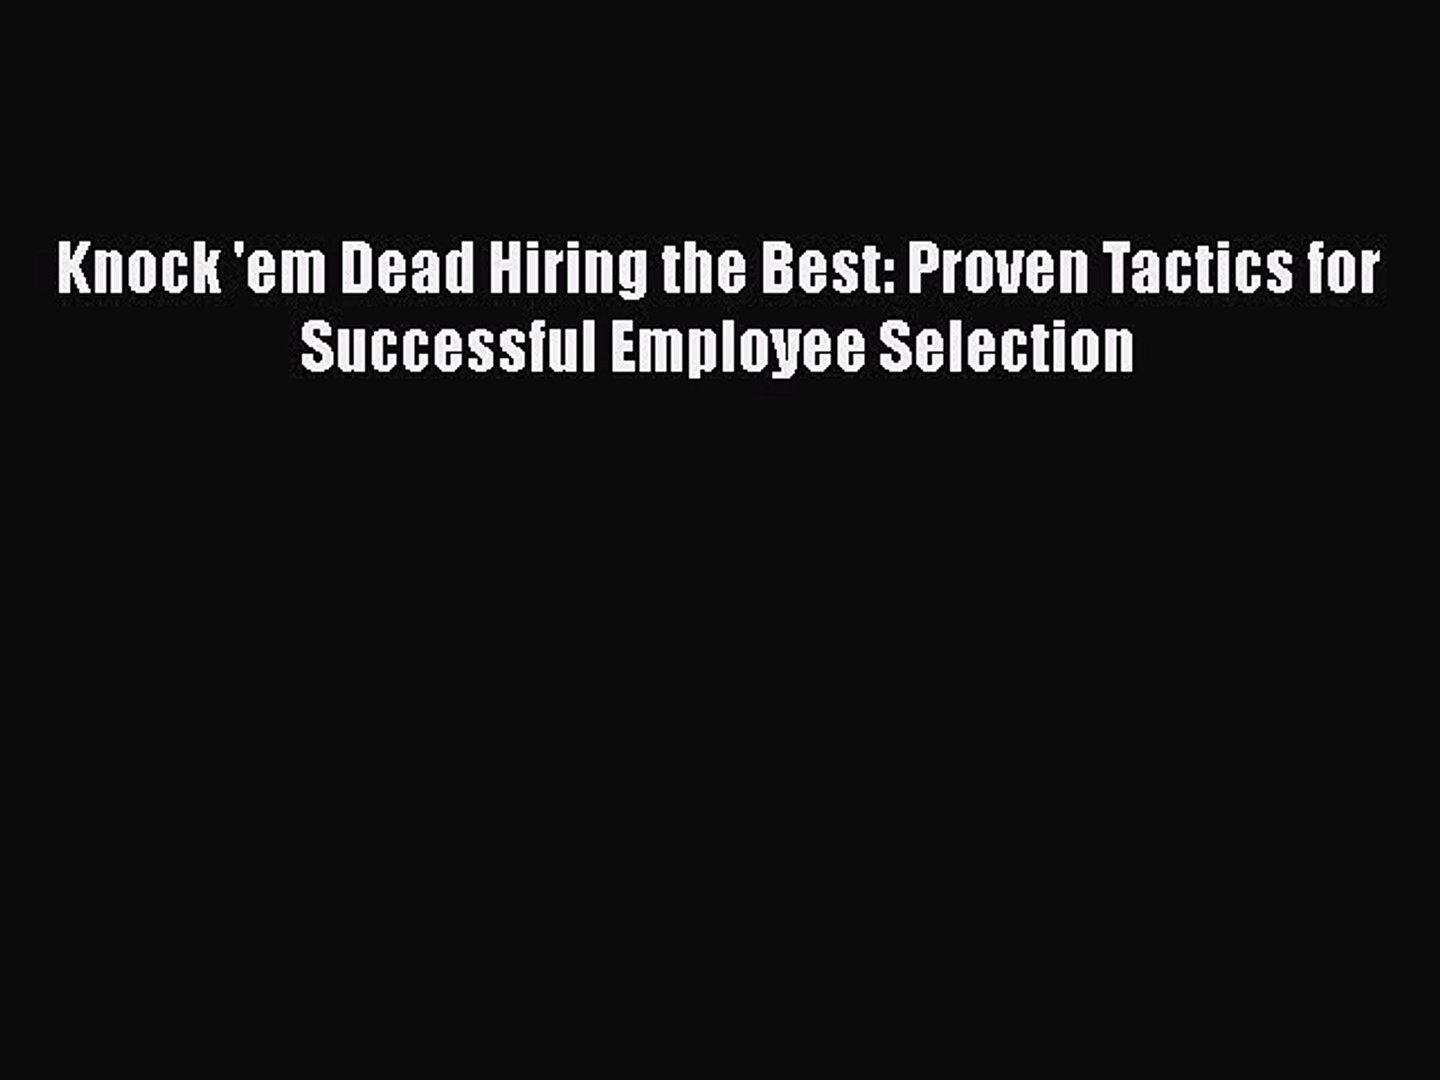 Proven Tactics for Successful Employee Selection Knock em Dead Hiring the Best